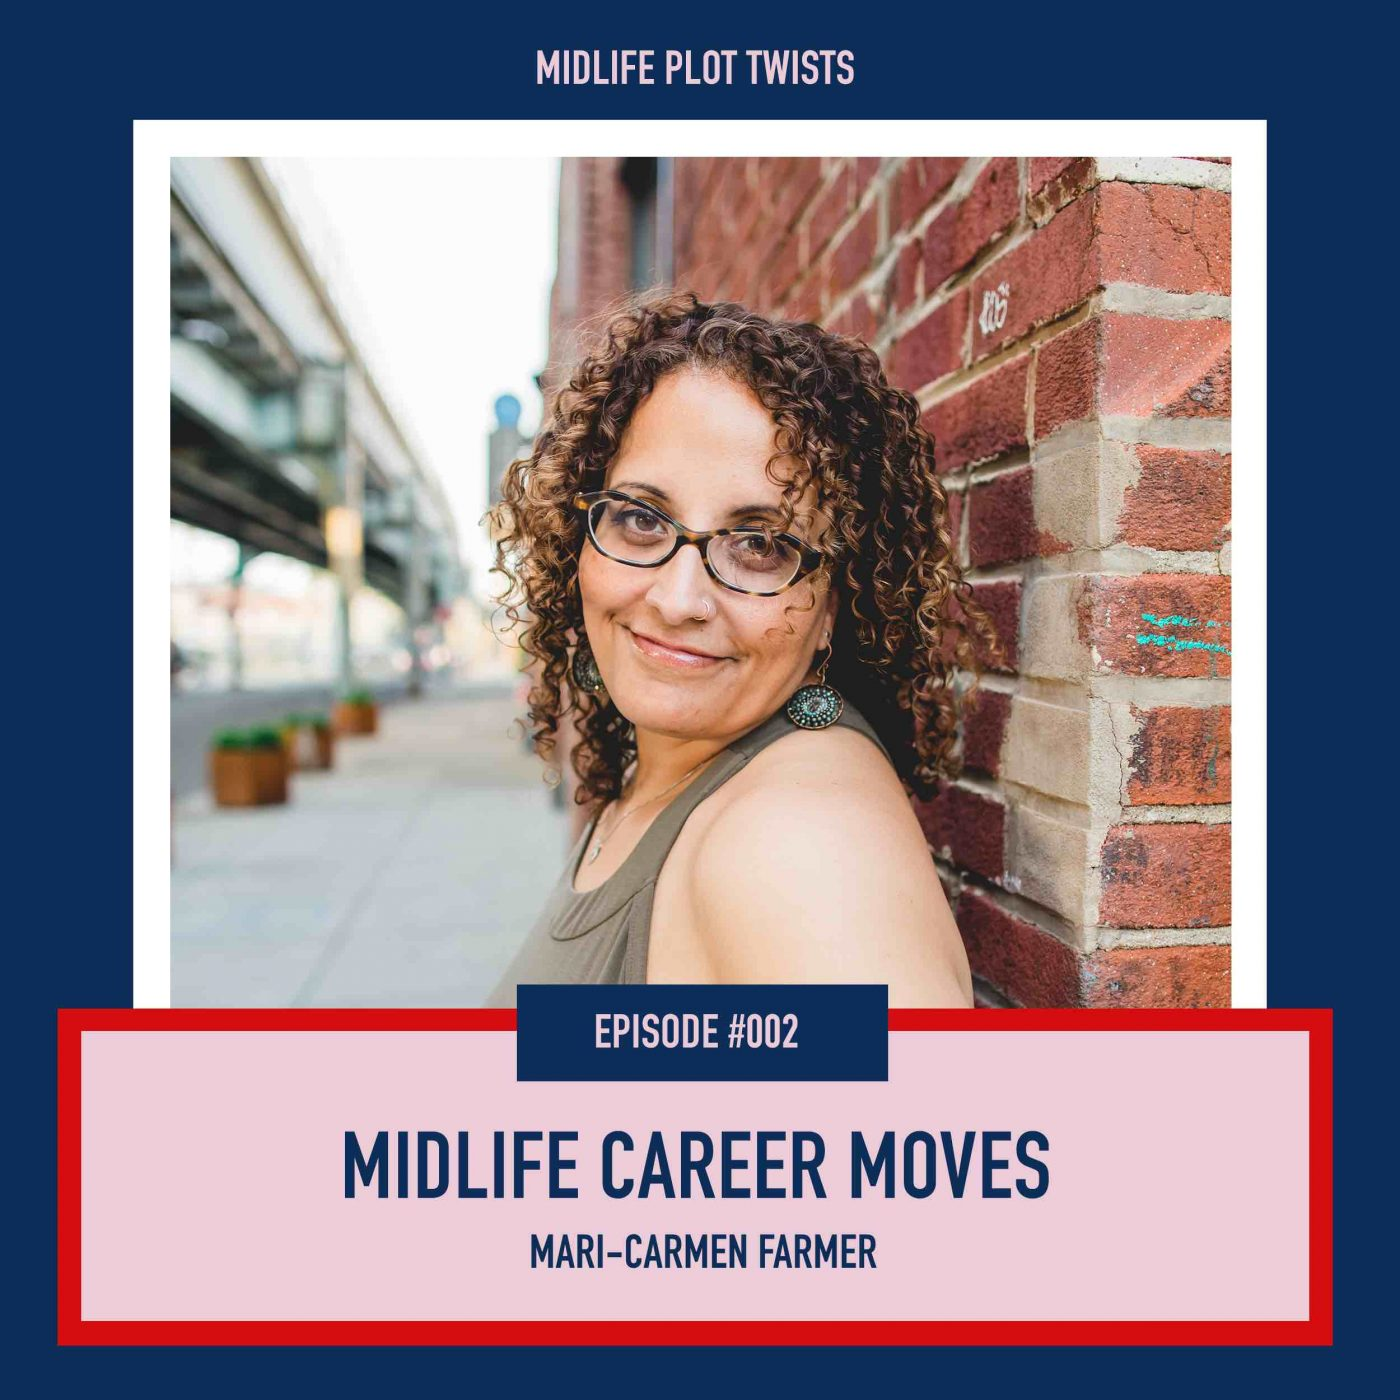 Midlife Plot Twist podcast Mari-Carmen Farmer